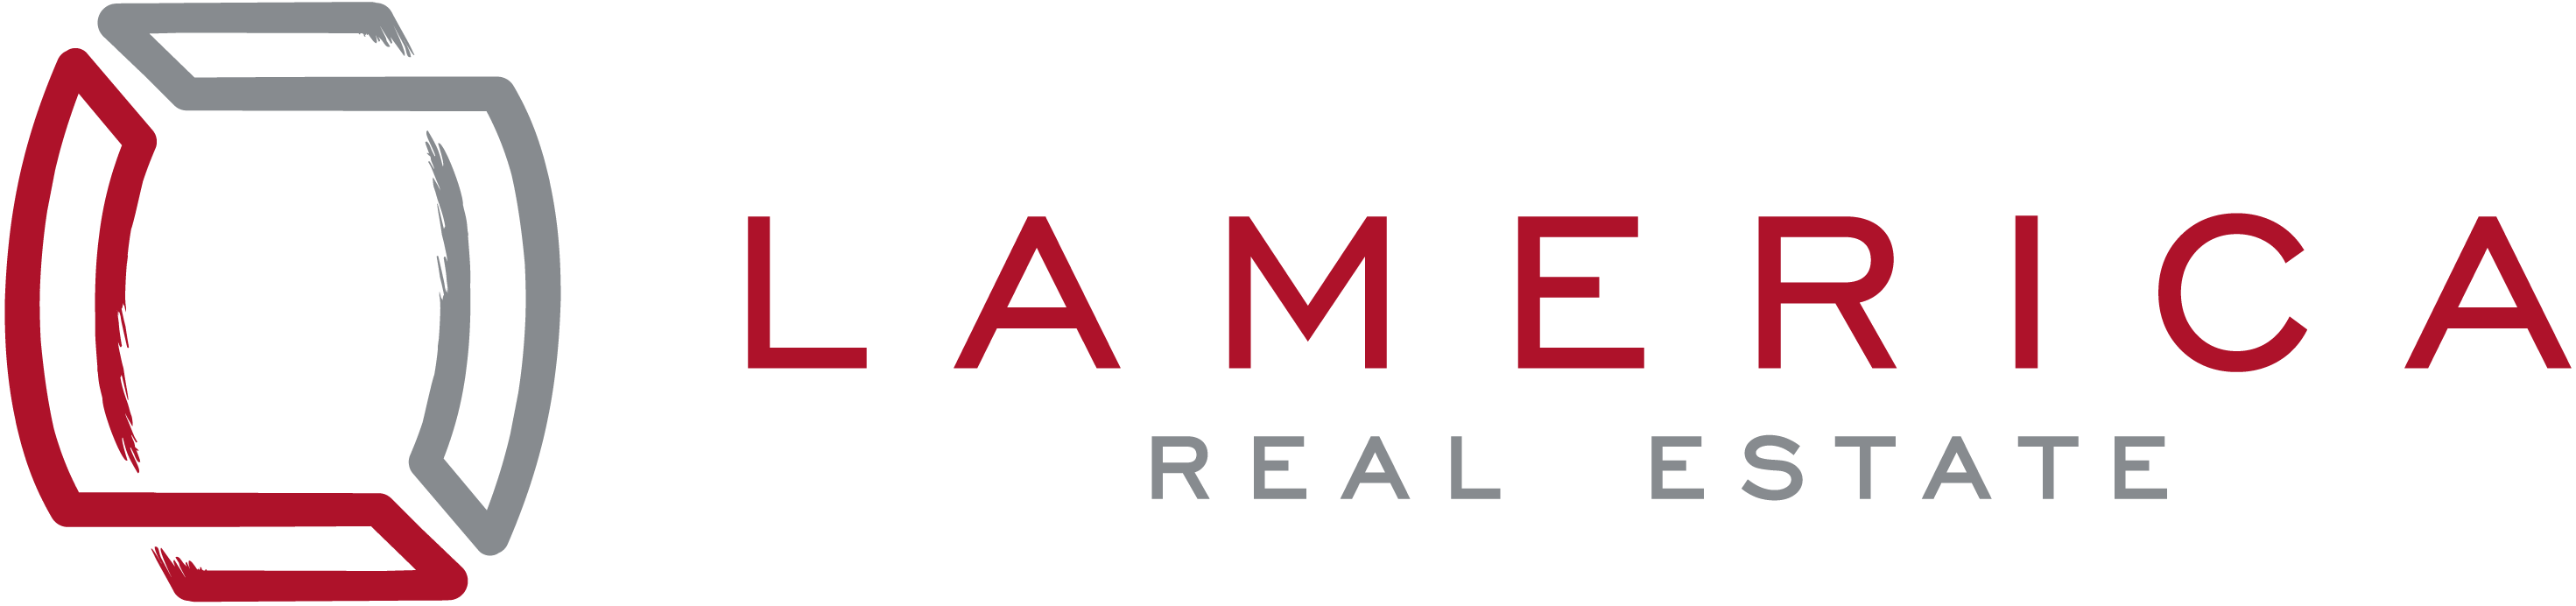 Using Drones to Sell: An Interview with LAMERICA Real Estate's Rick Albert